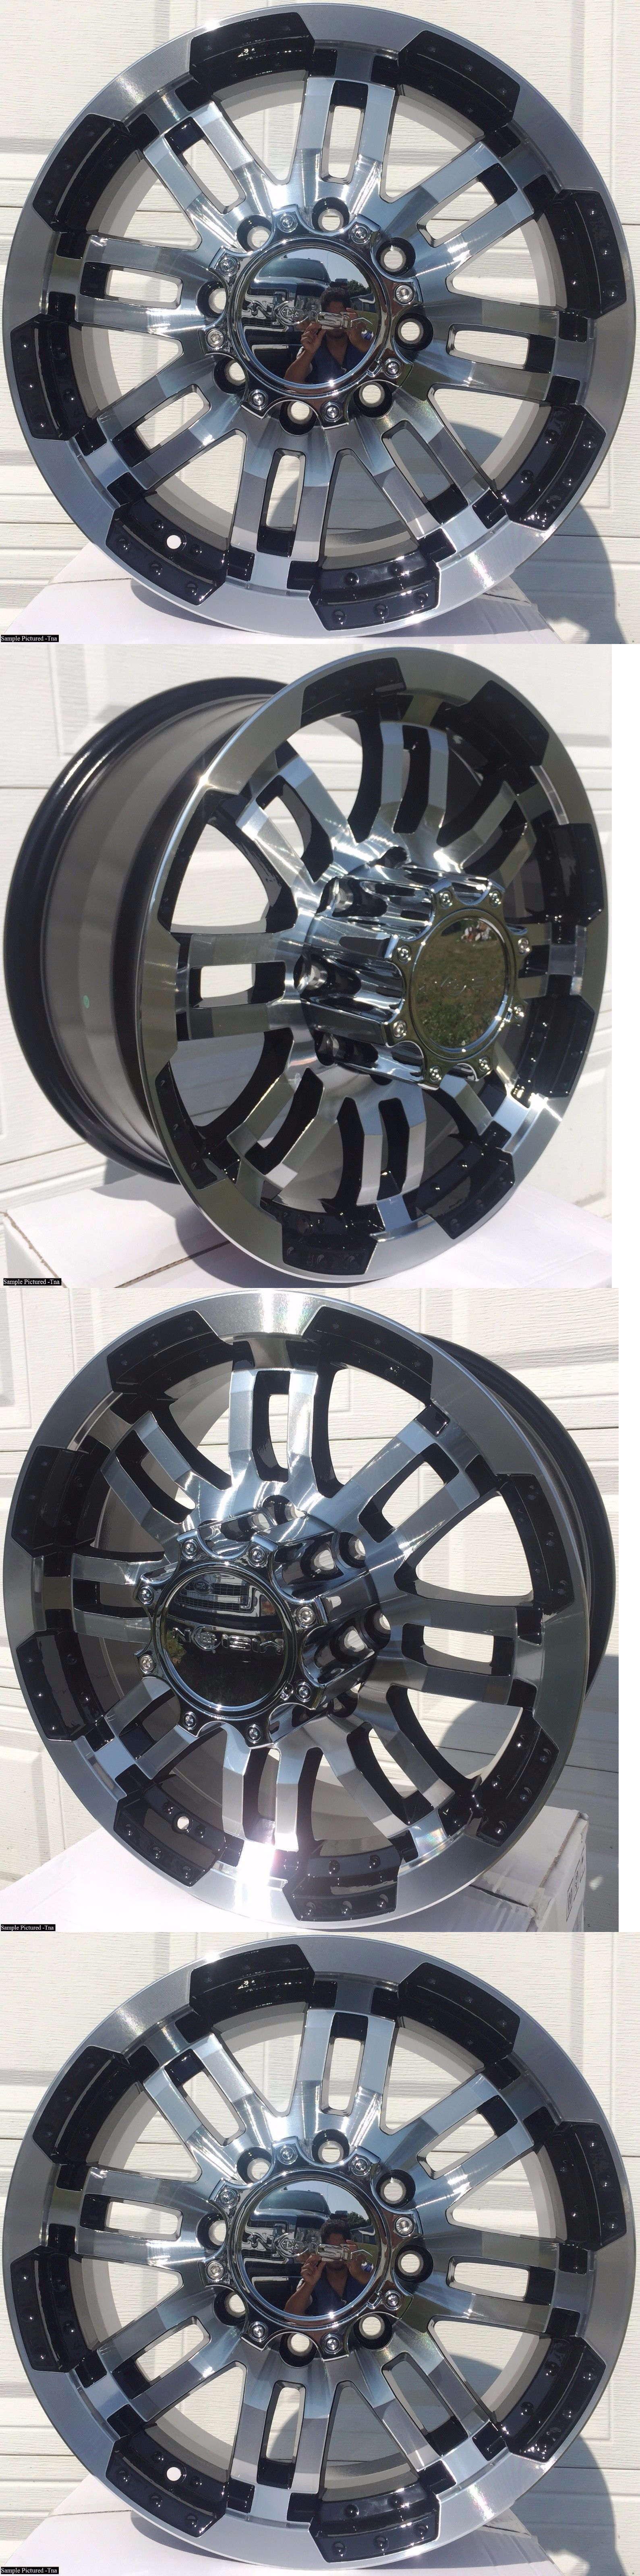 Auto parts general 4 new 20 wheels rims for 2011 2012 2013 2014 2015